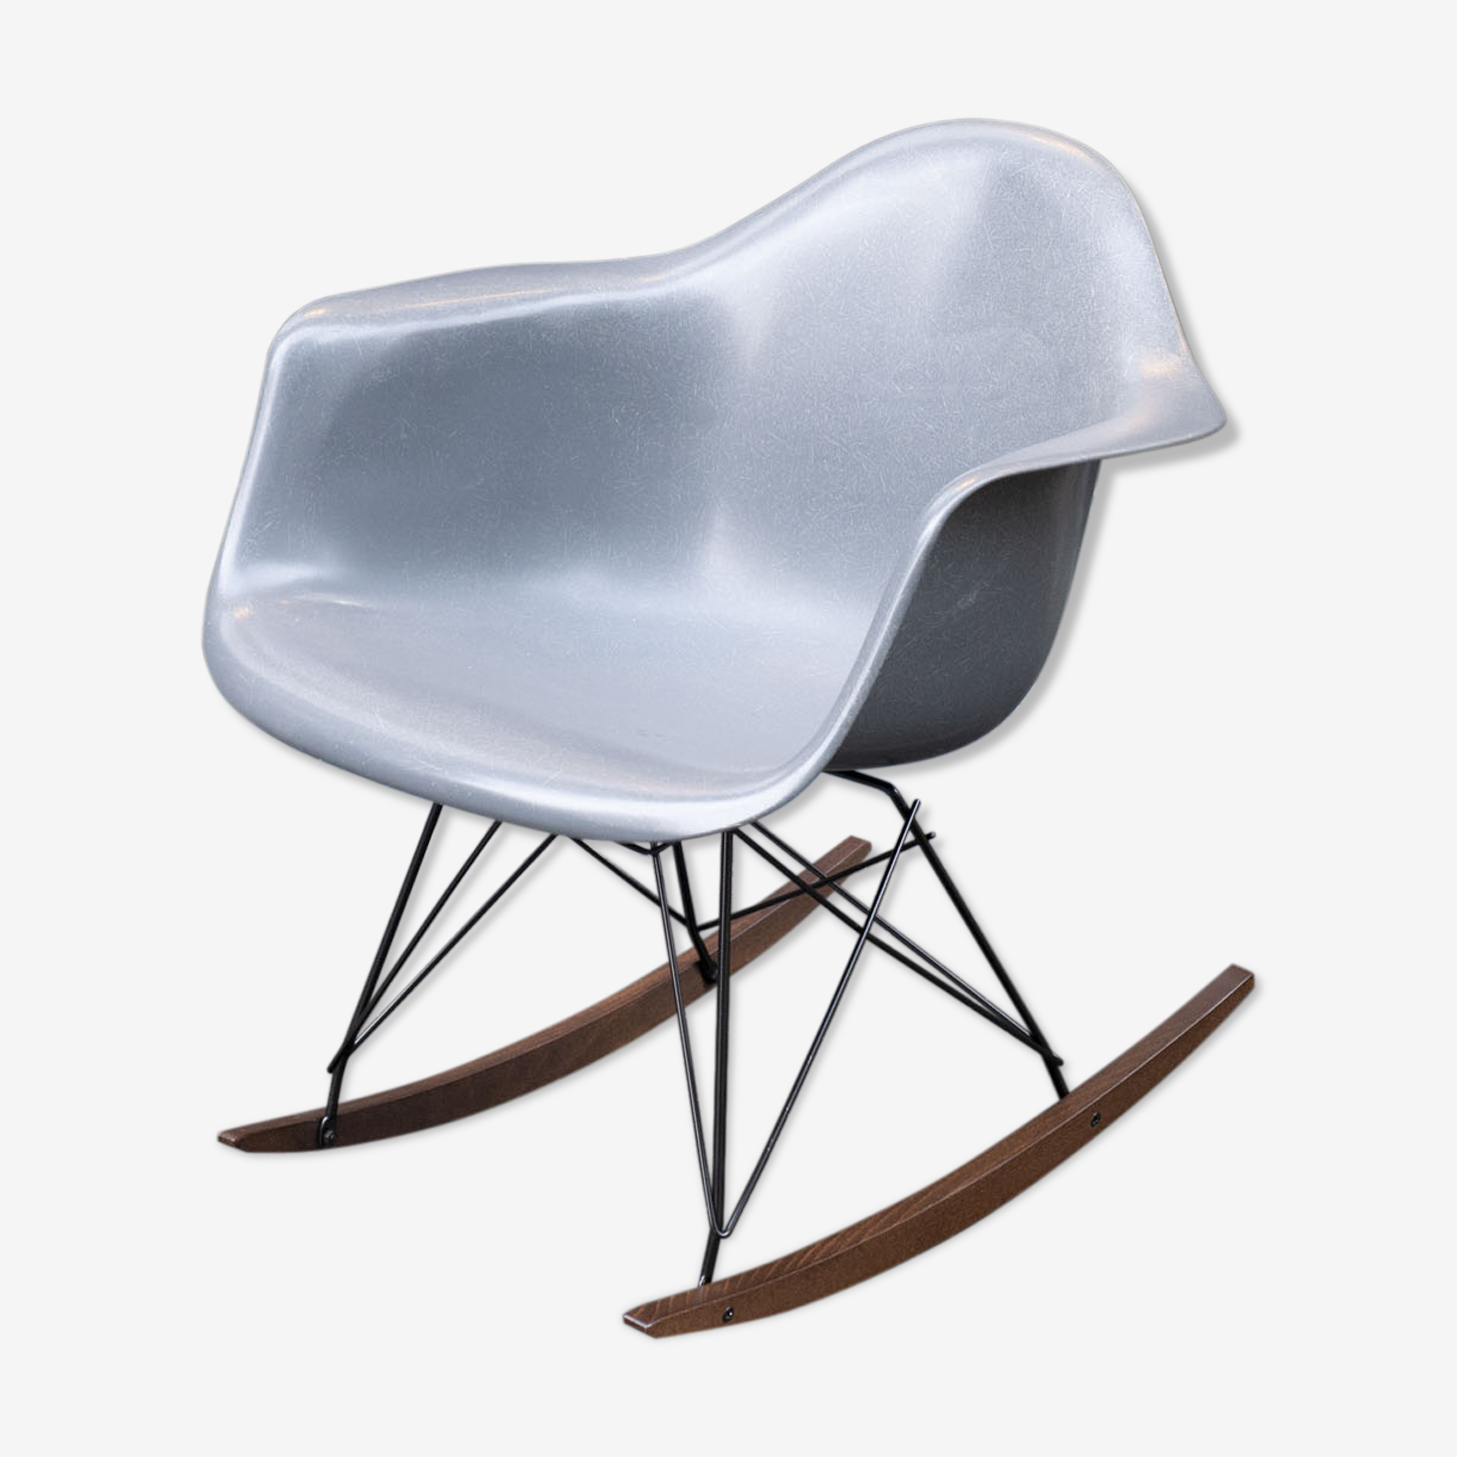 Rocking chair by Charles and Ray Eames Herman Miller edition